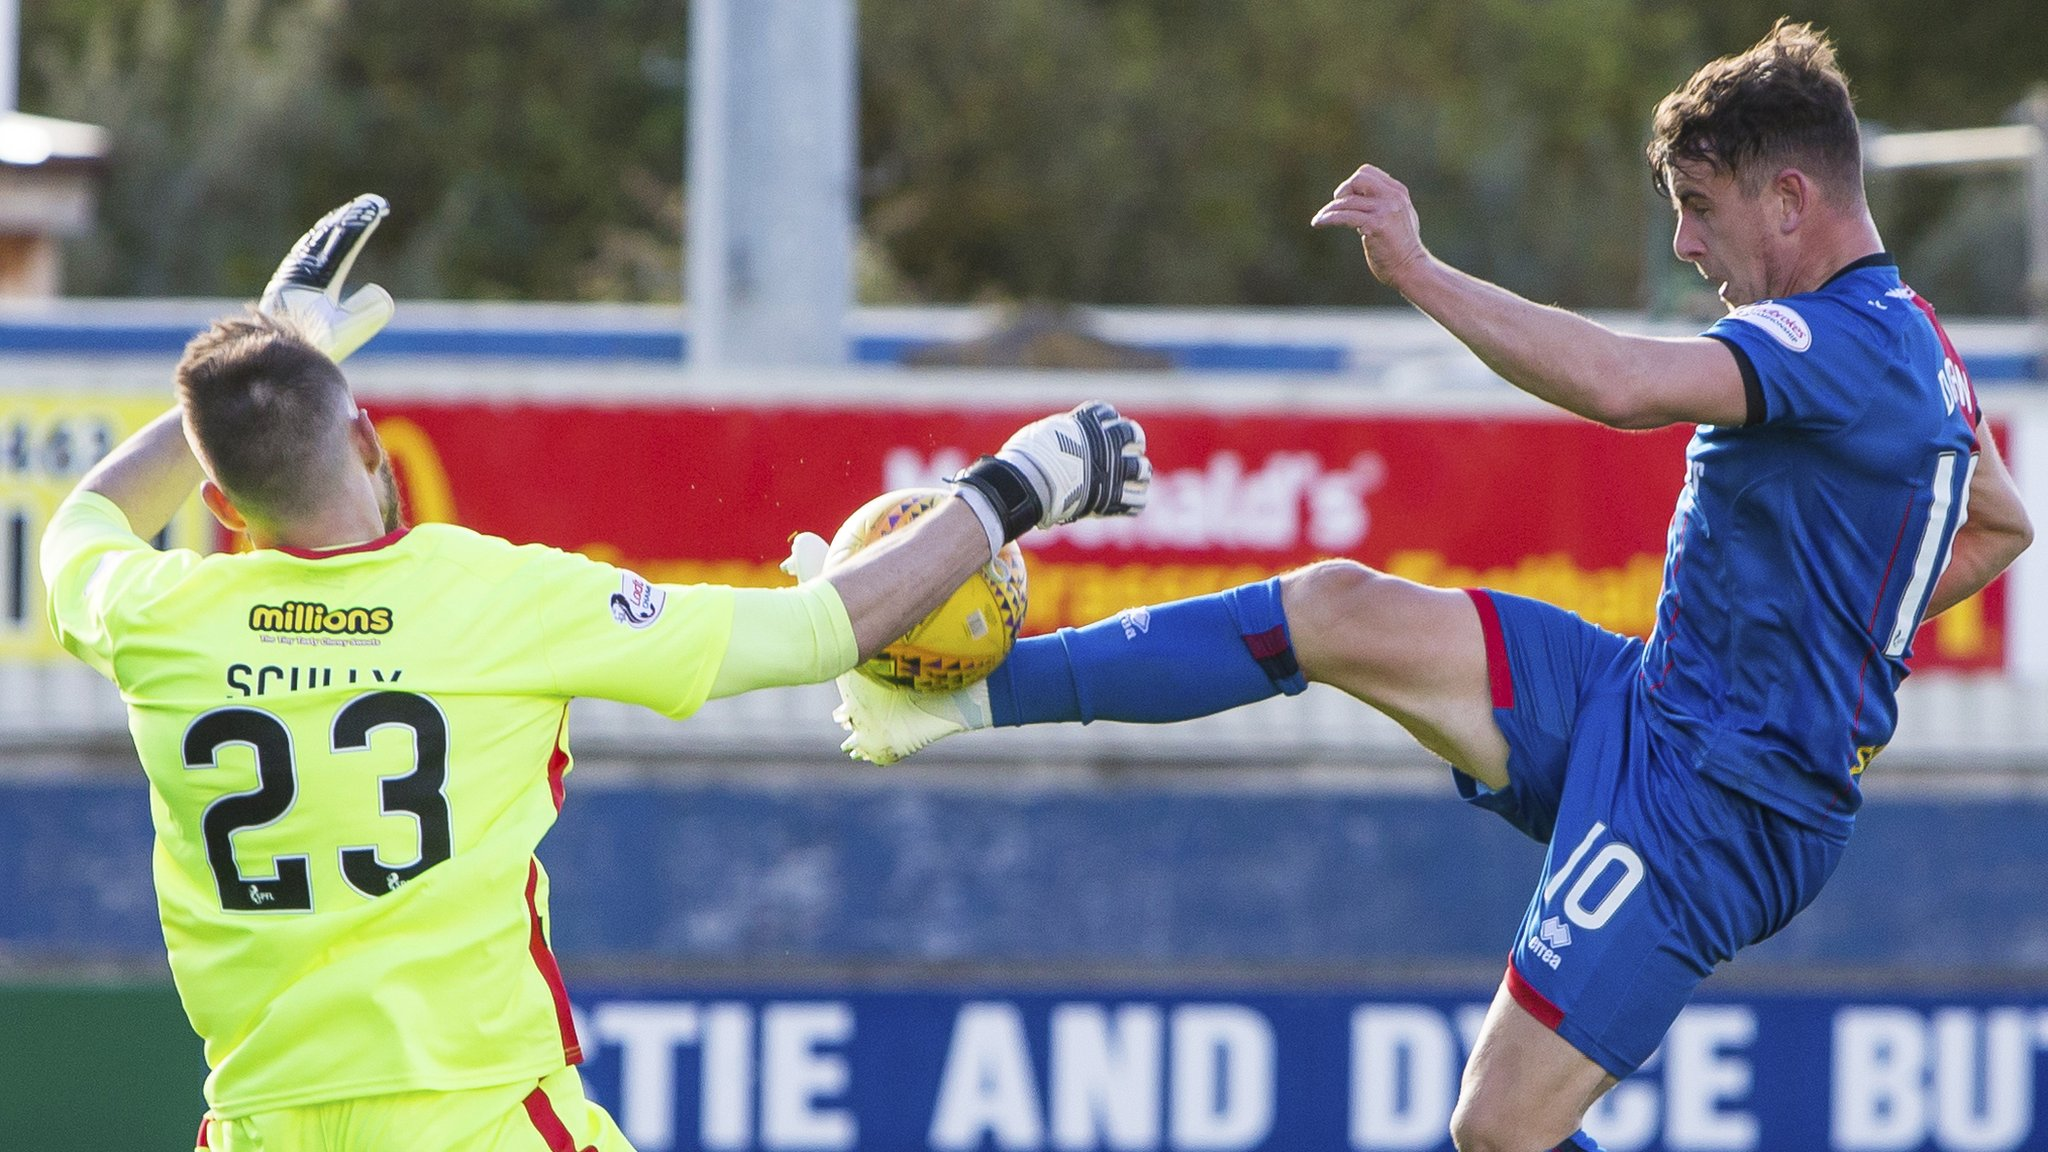 Inverness Caledonian Thistle 3-3 Greenock Morton: Championship foes battle to draw